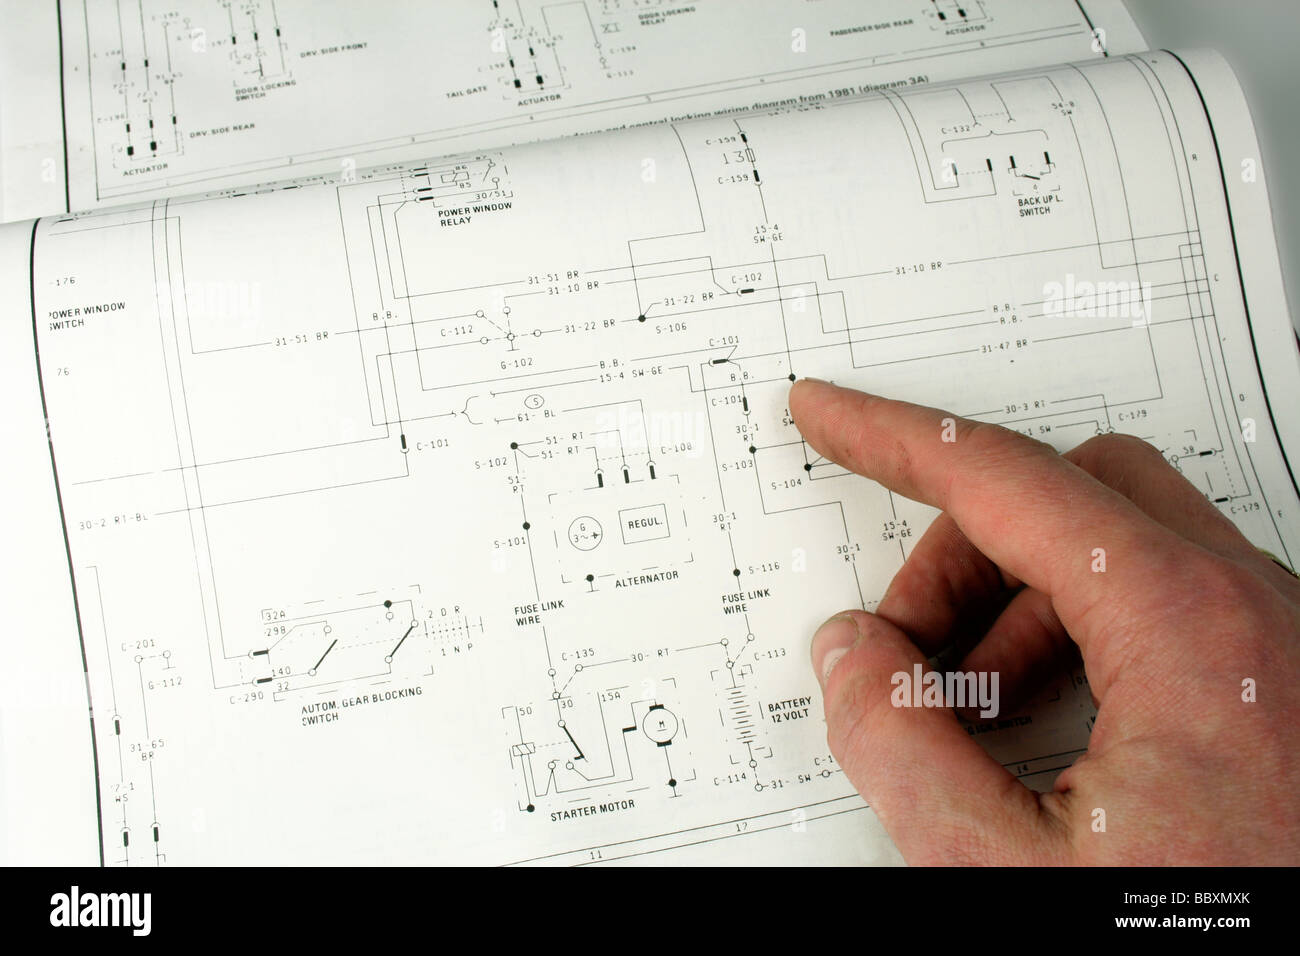 man referring to electrical wiring diagram Stock Photo ... on 3 wall diagram, single pole diagram, single phase diagram, 3-way electrical connection diagram, 3 line diagram, house wiring 3-way switch diagram, 220 3 phase wiring diagram, light switch wiring diagram, 3 speed switch wiring diagram, towing wiring diagram, meter socket diagram, easy 3 way switch diagram, grounding diagram, 3-way lamp wiring diagram, receptacle diagram, big bear 400 wiring diagram, three switch wiring diagram, fuse diagram, 3 light diagram,